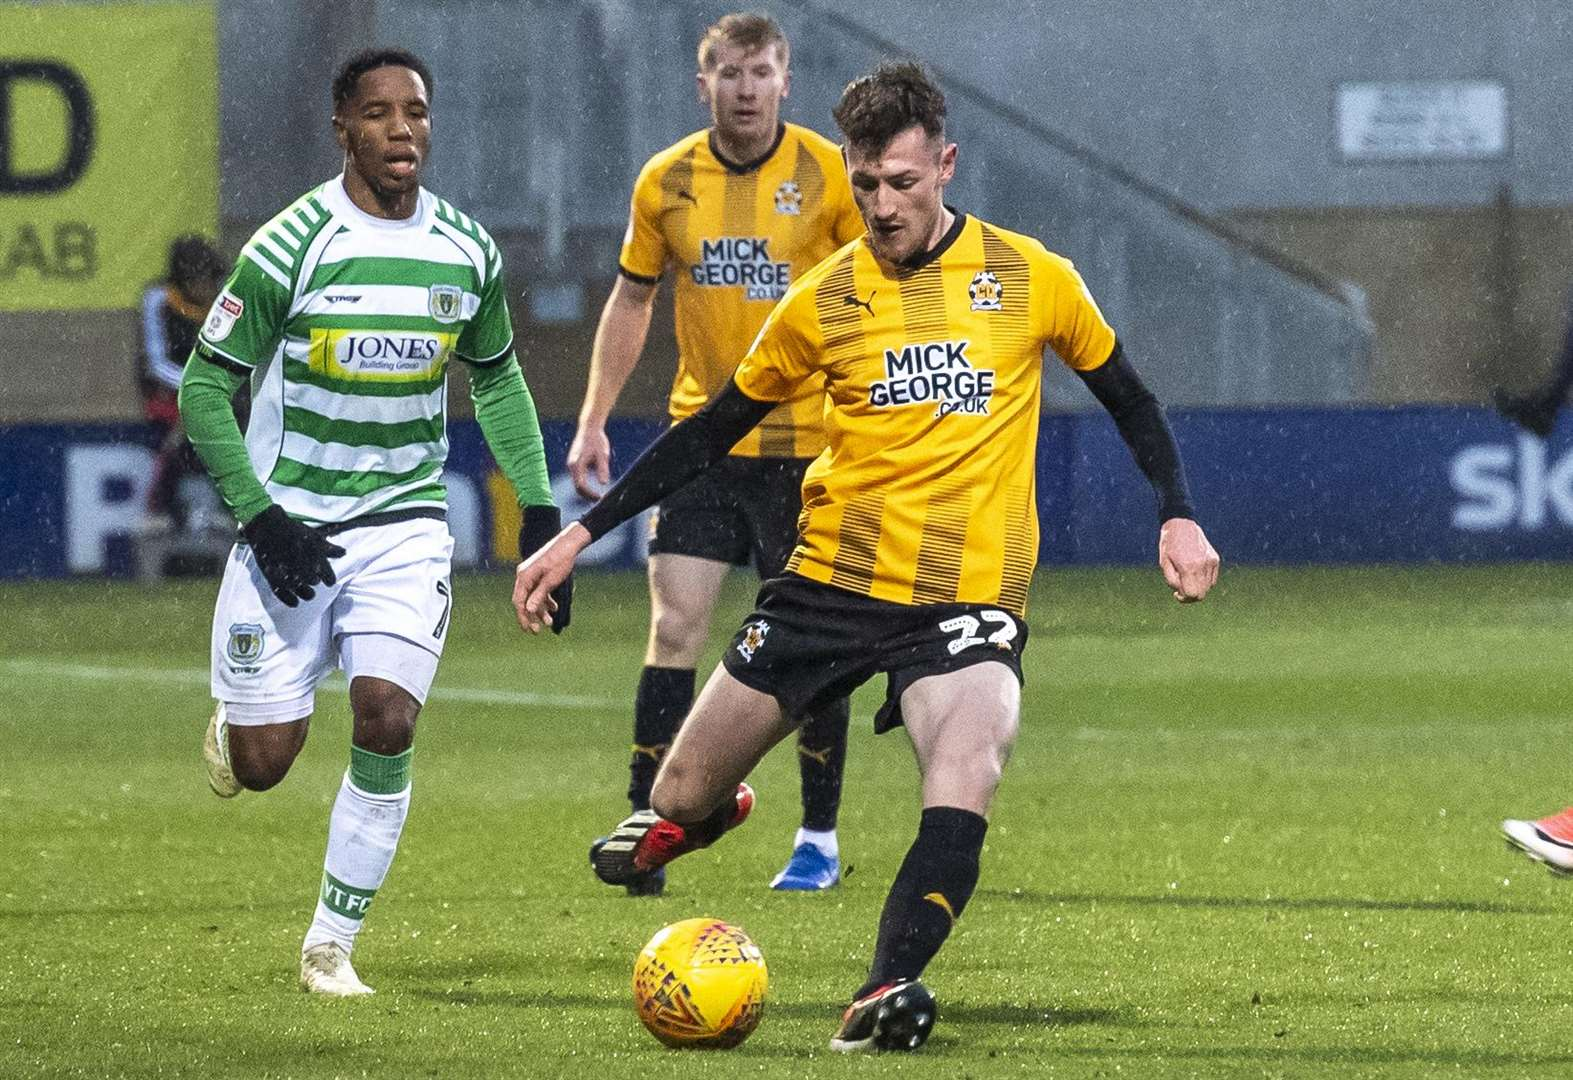 Determined Paul Lewis flourishes after finding feet at Cambridge United